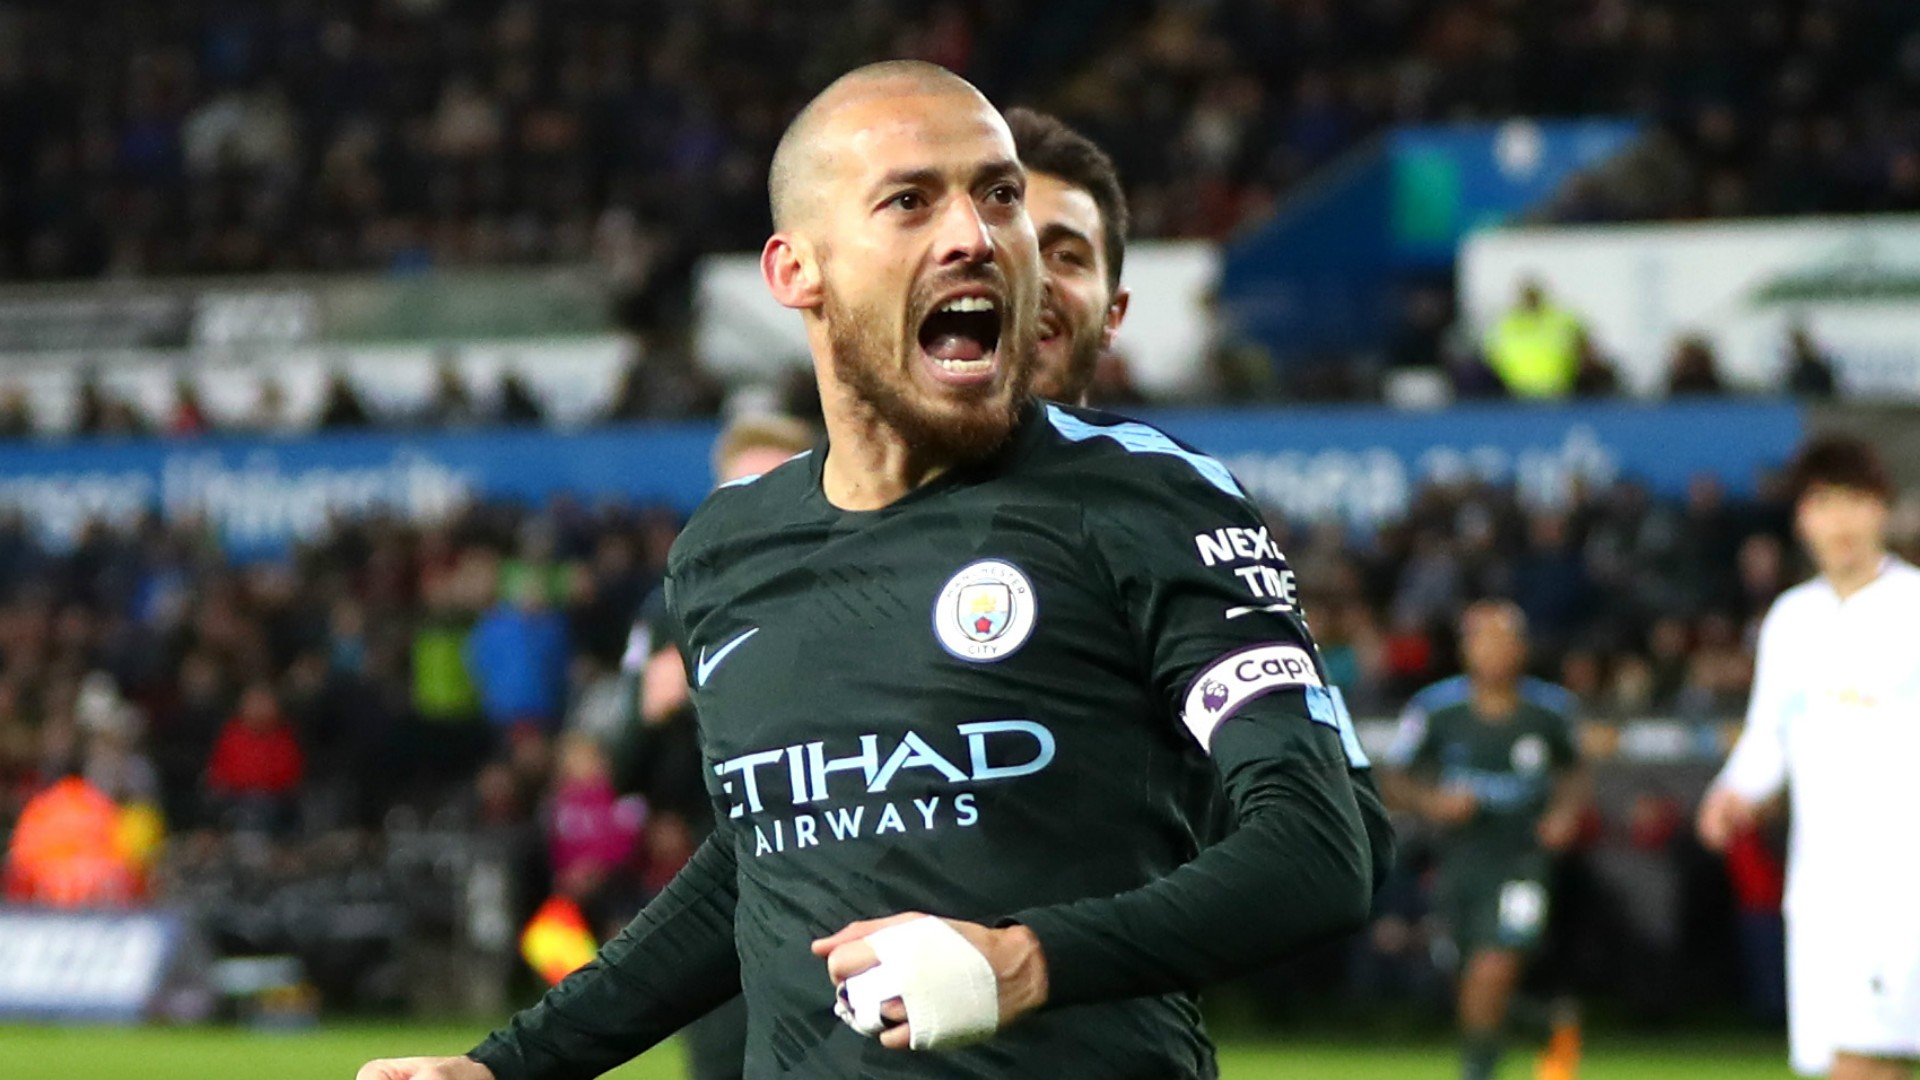 https://images.performgroup.com/di/library/GOAL/11/c8/david-silva-manchester-city_zab5ktv2nkpd1kkeeymud09mm.jpg?t=1367050032&quality=90&w=0&h=1260